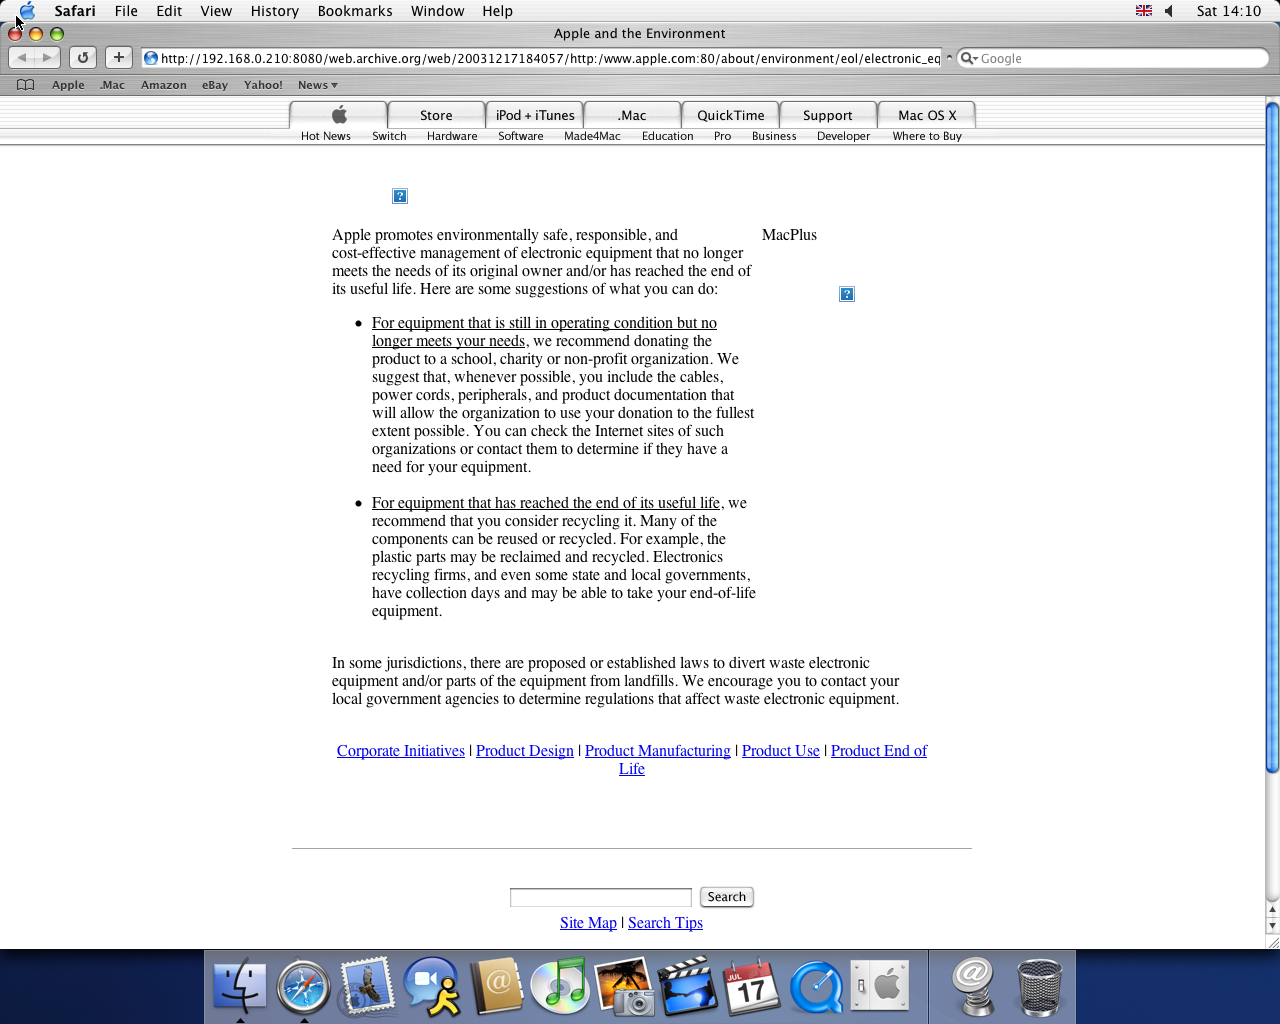 OS X 10.3 PPC with Safari 1.1 displaying a page from Apple.com archived at December 17, 2003 at 18:40:57